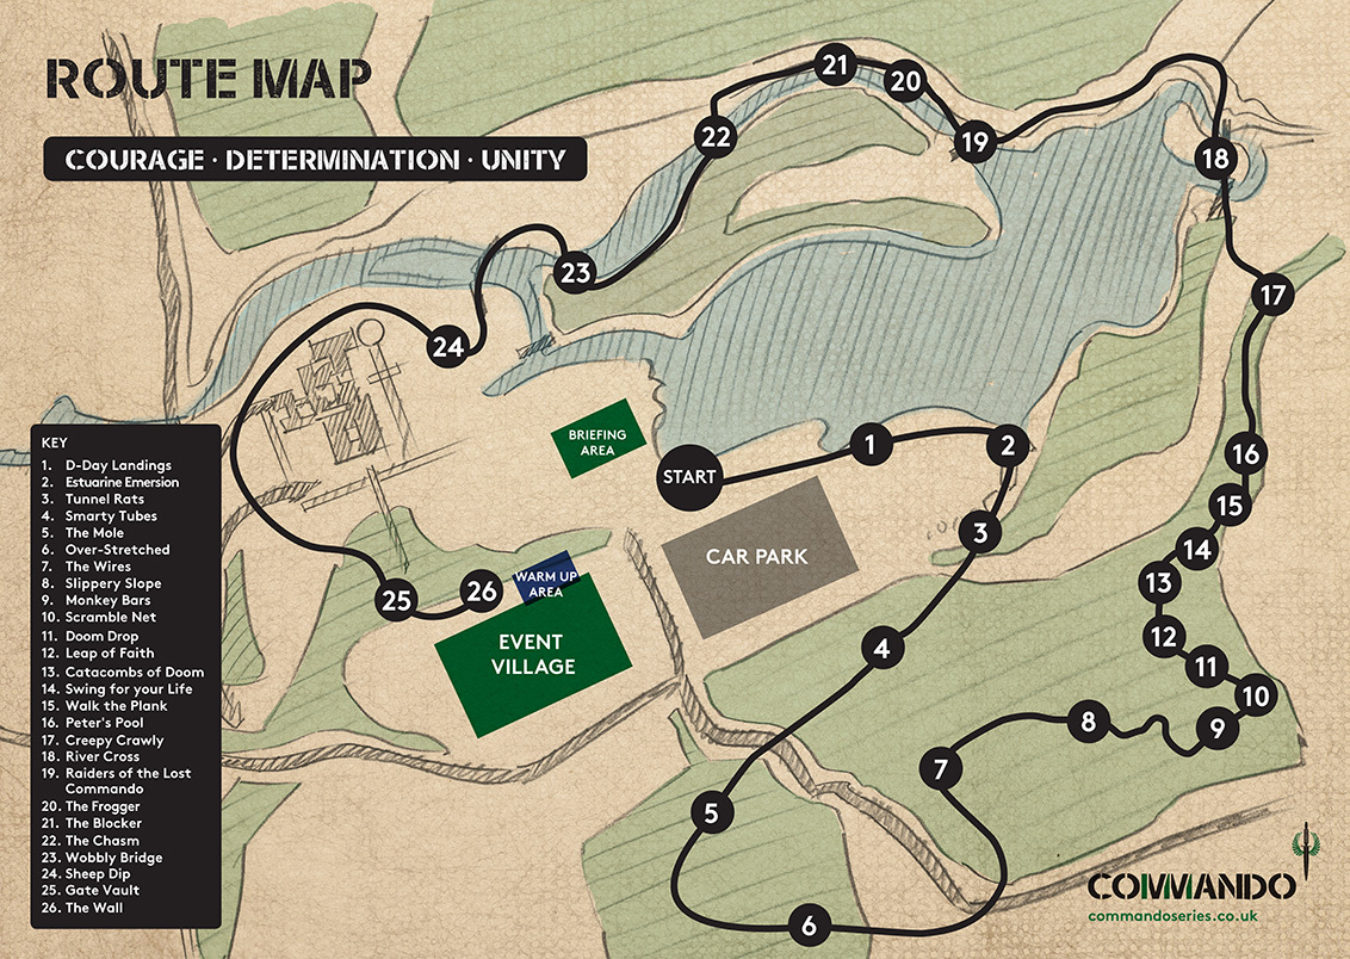 Commando 2019 Route Map